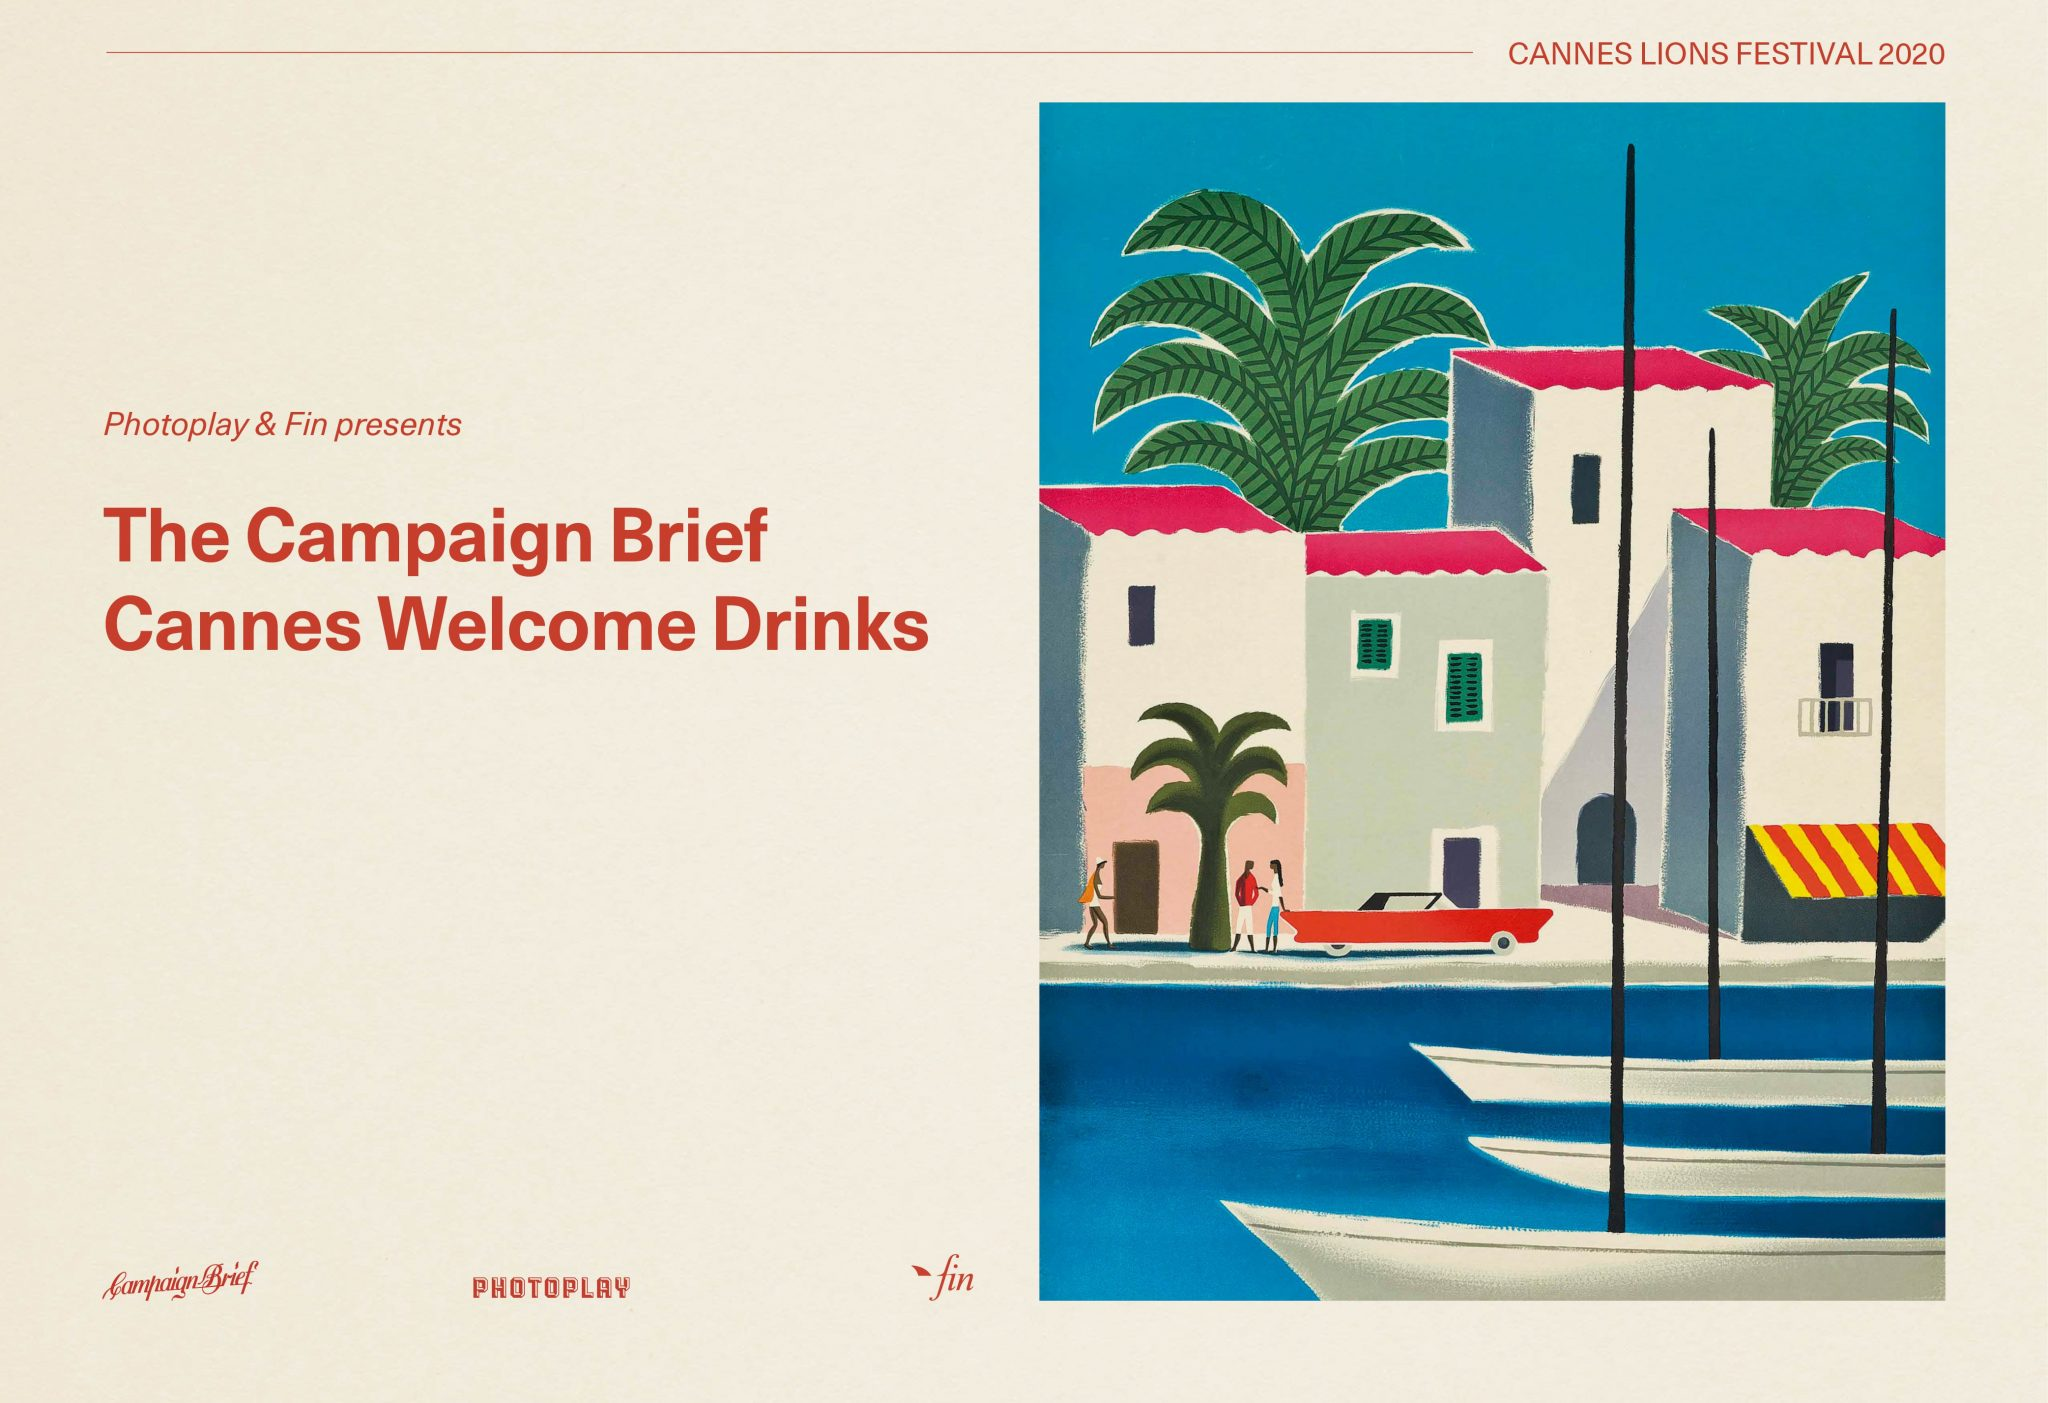 An Aussie or Kiwi going to Cannes? Get your invite now to the Campaign Brief Welcome Drinks courtesy of Photoplay and Fin Design & Effects